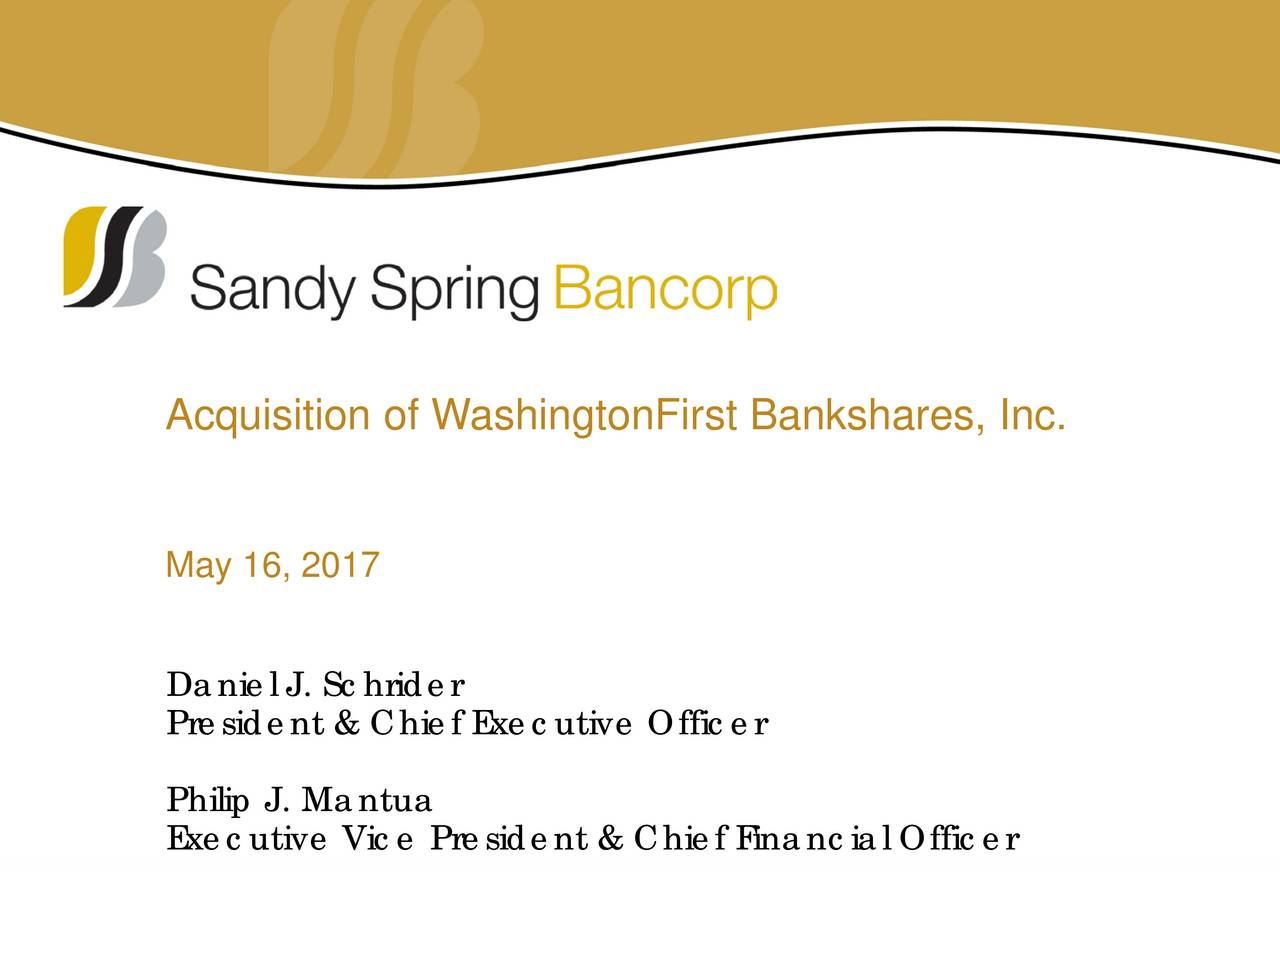 May 16, 2017 Daniel J. Schrider President & Chief Executive Officer Philip J. Mantua Executive Vice President & Chief Financial Officer